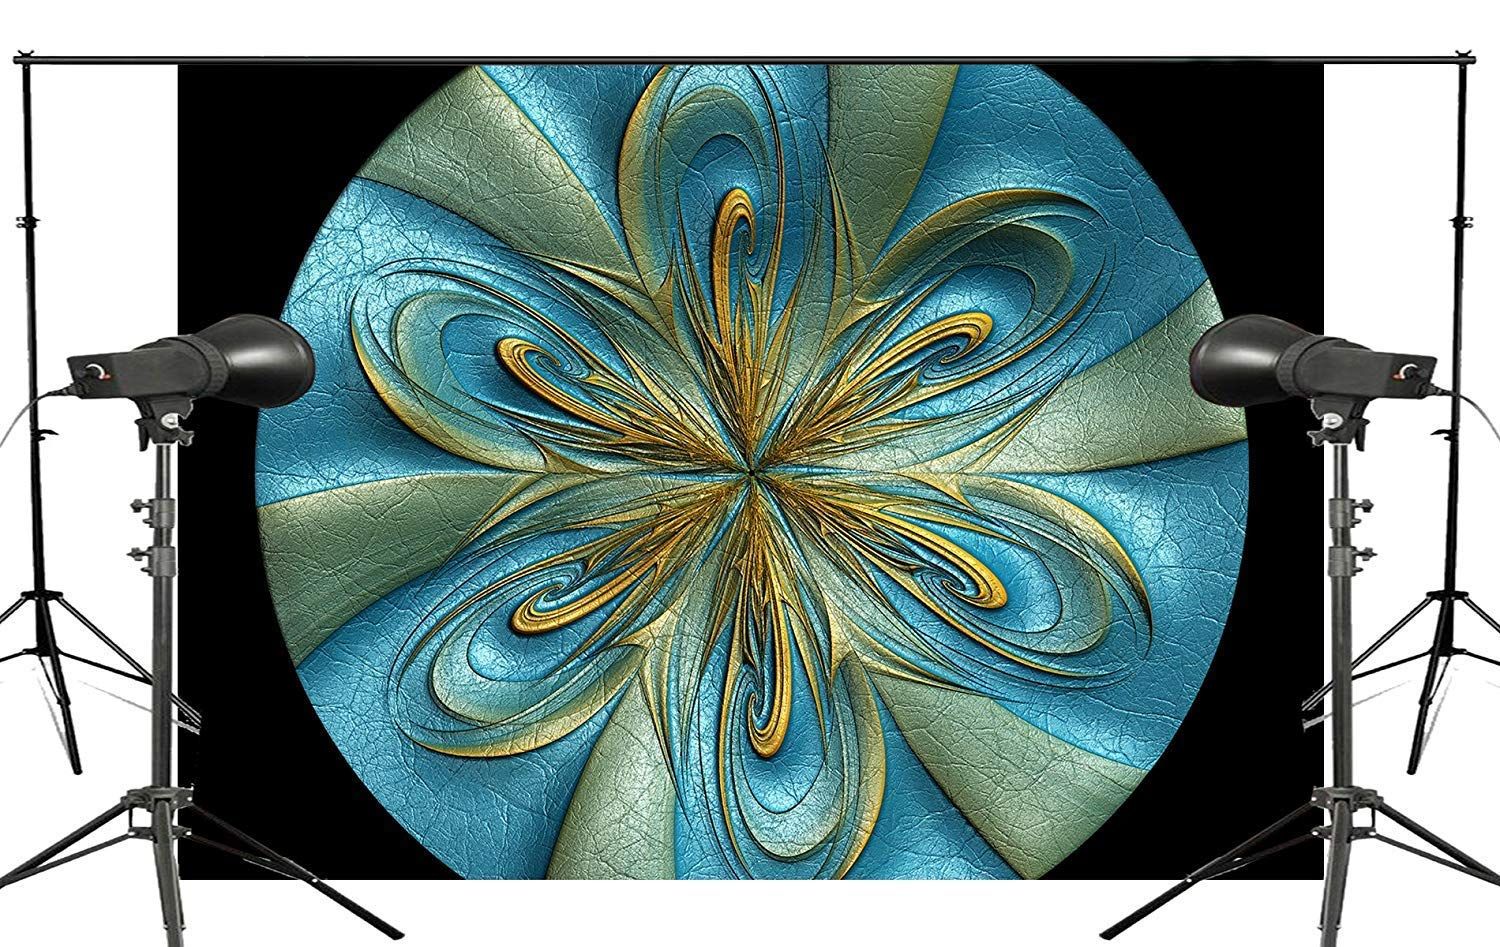 ERTIANANG Exquisite Colorful Flower Circle Photography Background Abstract Dimensional Black Blue Green Yellow Backdrops Art